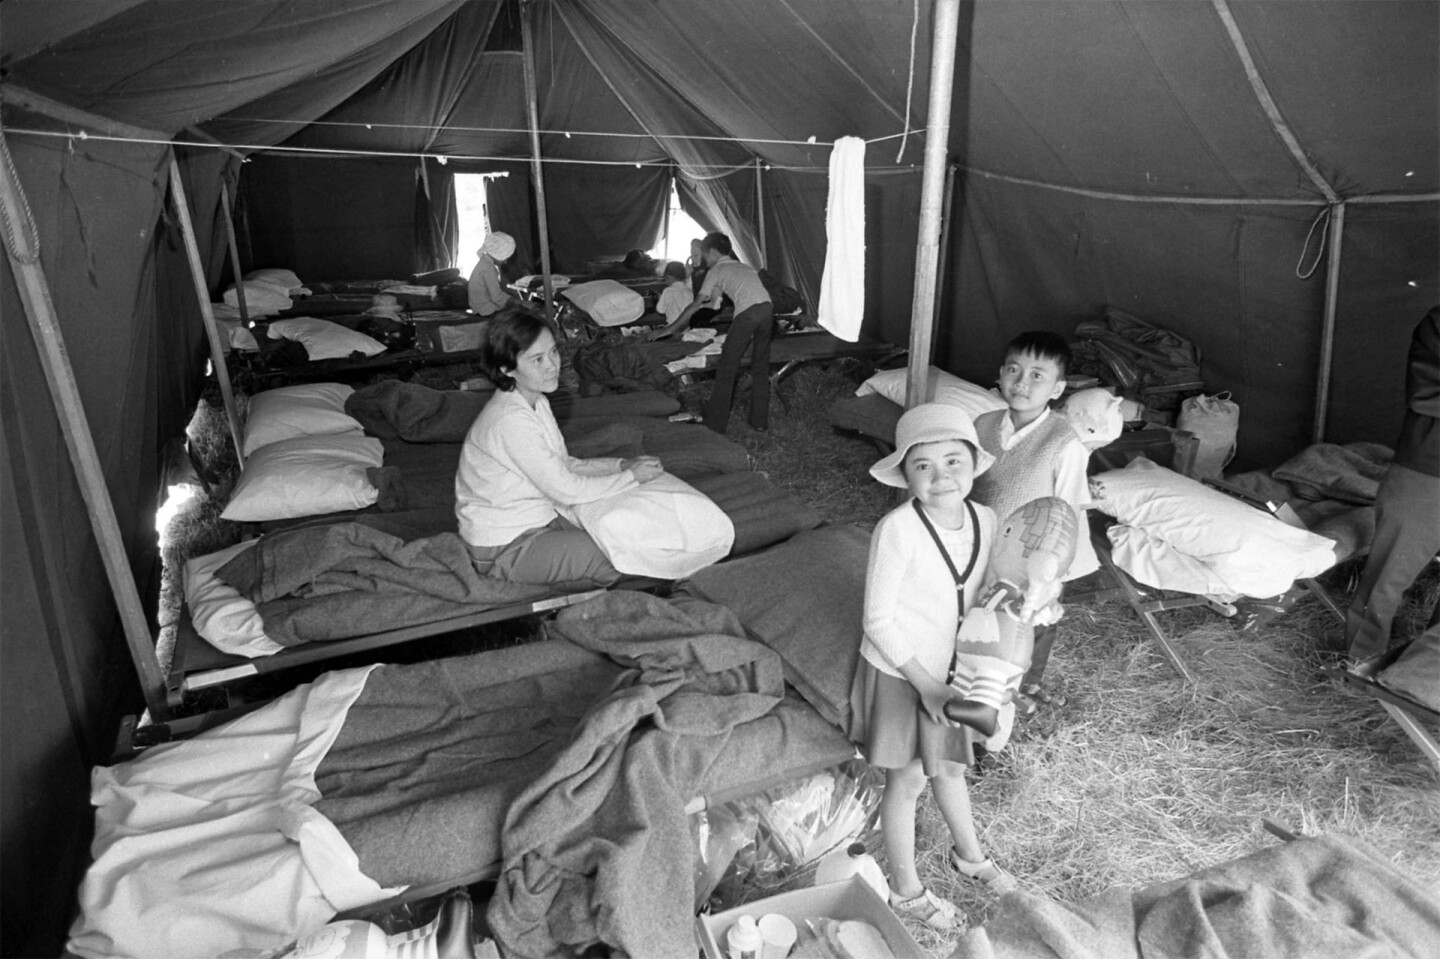 Vietnamese refugees at Camp Pendleton, 1975